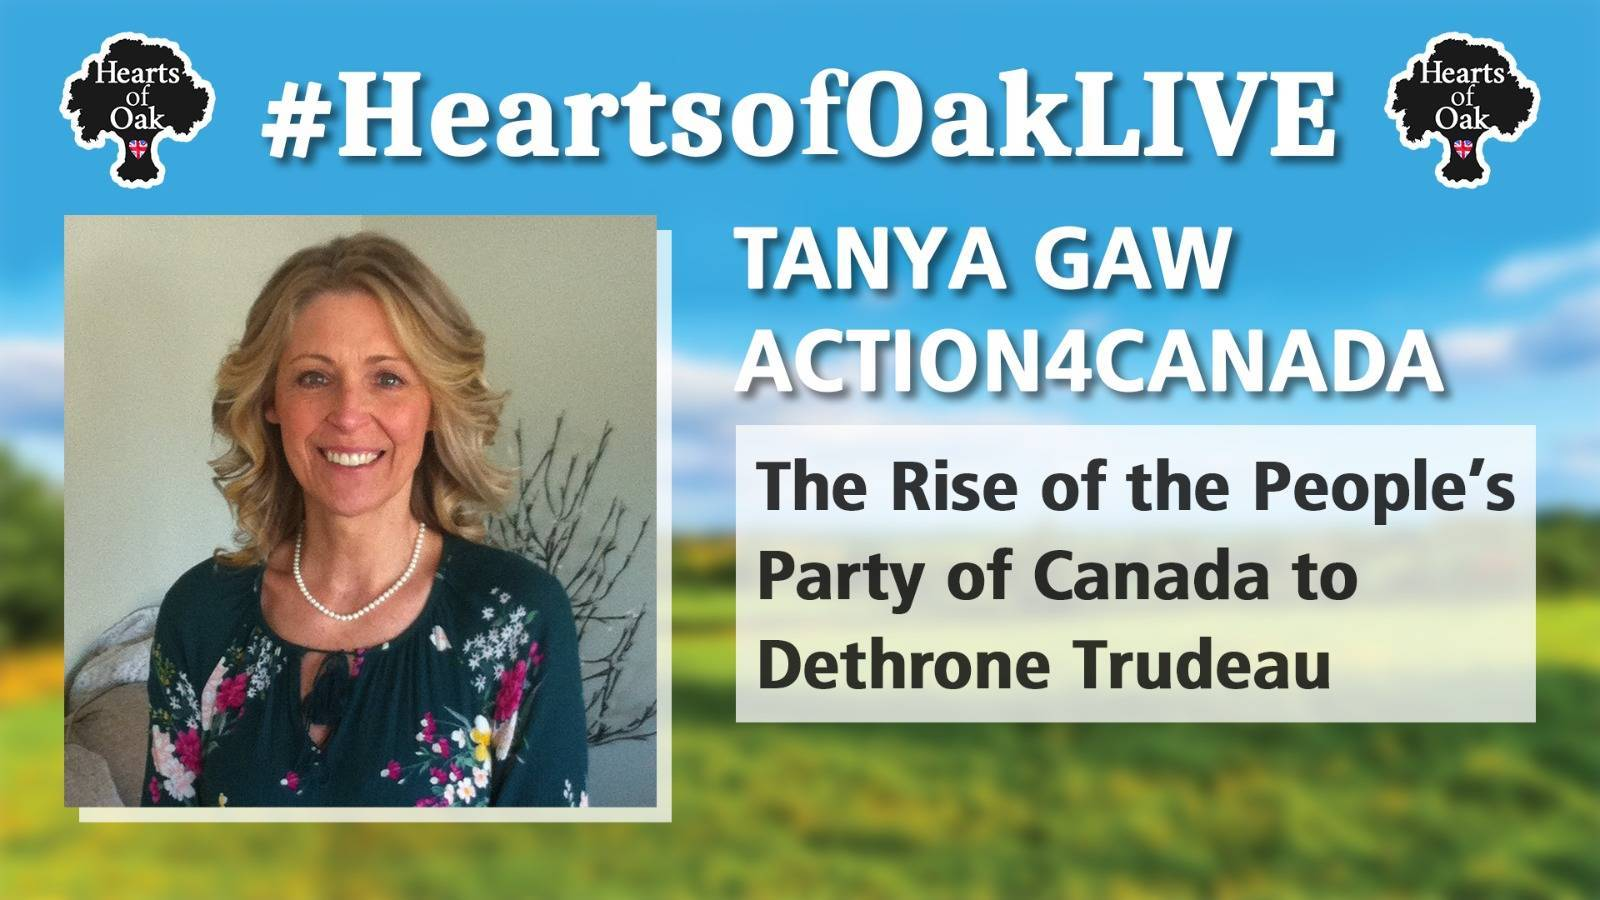 Tanya Gaw / Action4Canada - The Rise of the People's Party of Canada to Dethrone Trudeau